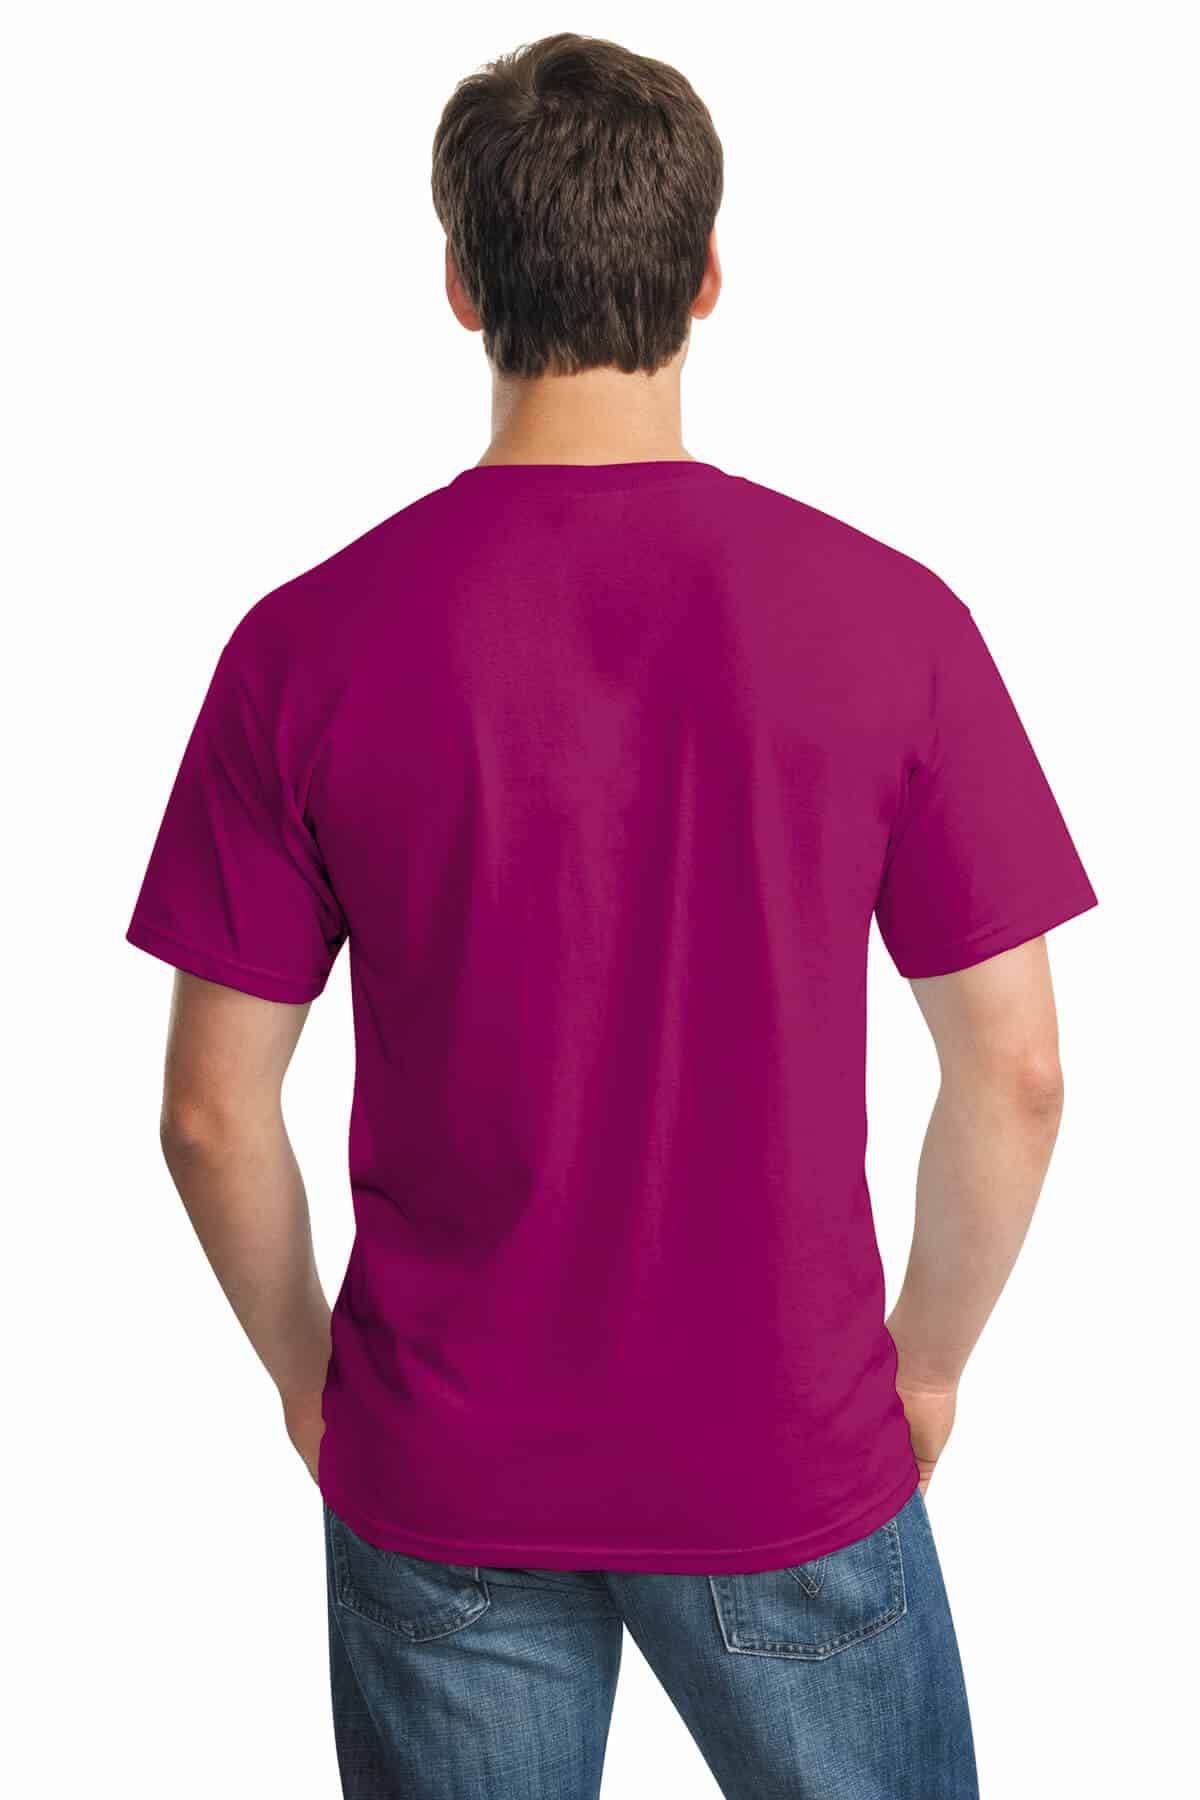 Berry Tee Back